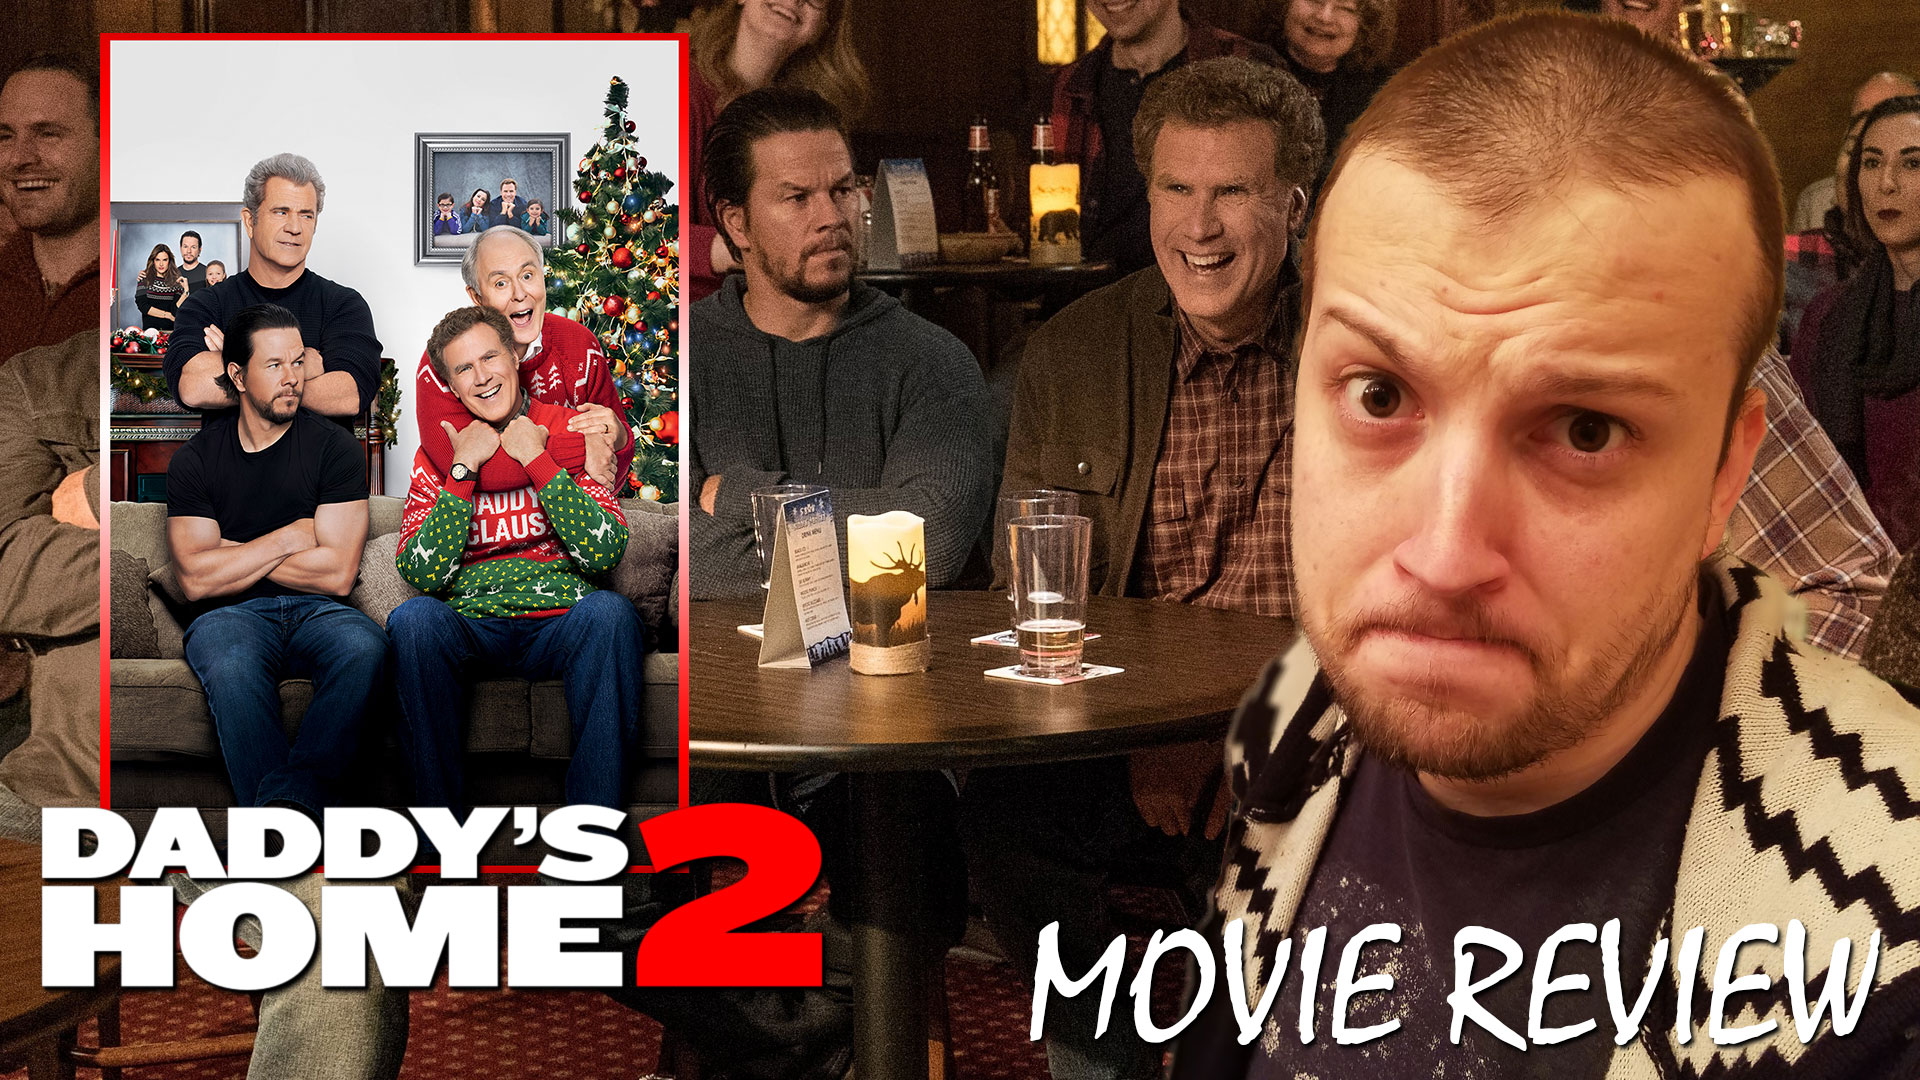 Review – Daddy's Home 2 (2017)